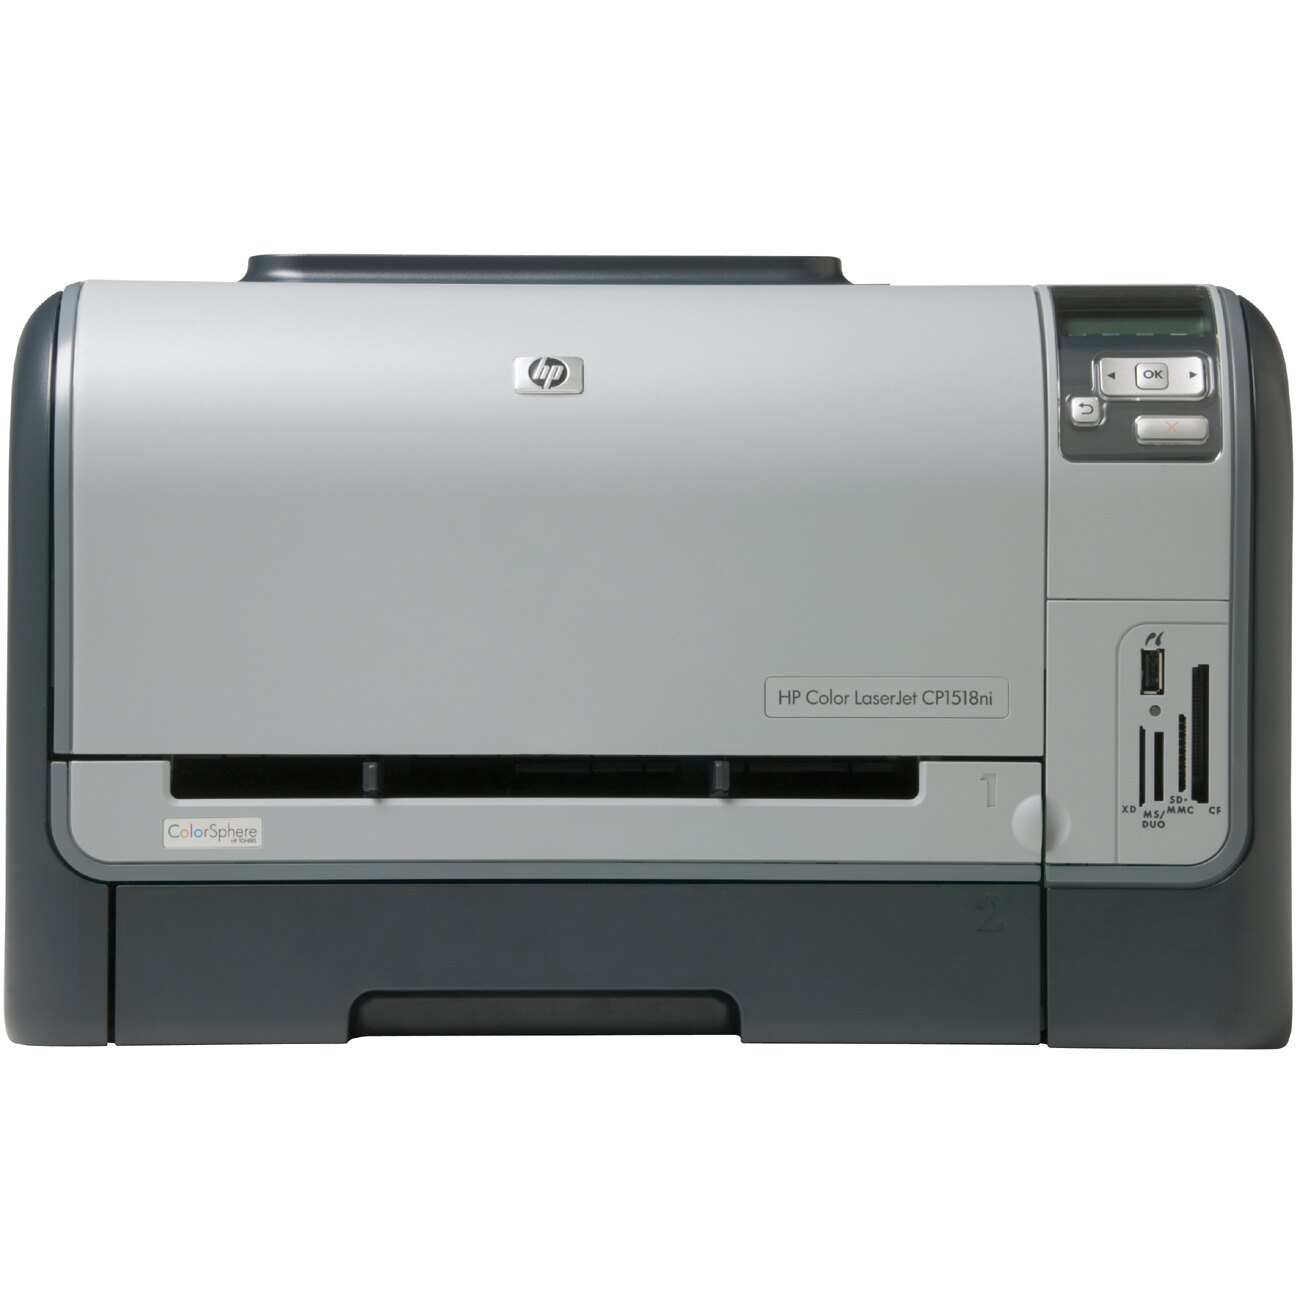 HP LaserJet CP1510 CP1518NI Laser Printer - Color - 600 x 600 dpi Print - Plain Paper Print - Desktop - 12 ppm Mono / 8 ppm Color Print - A4, A5, A6, B5 (JIS), B5, Custom Size - 151 sheets Standard Input Capacity - 30000 Duty Cycle - Manual Duplex Print - 0